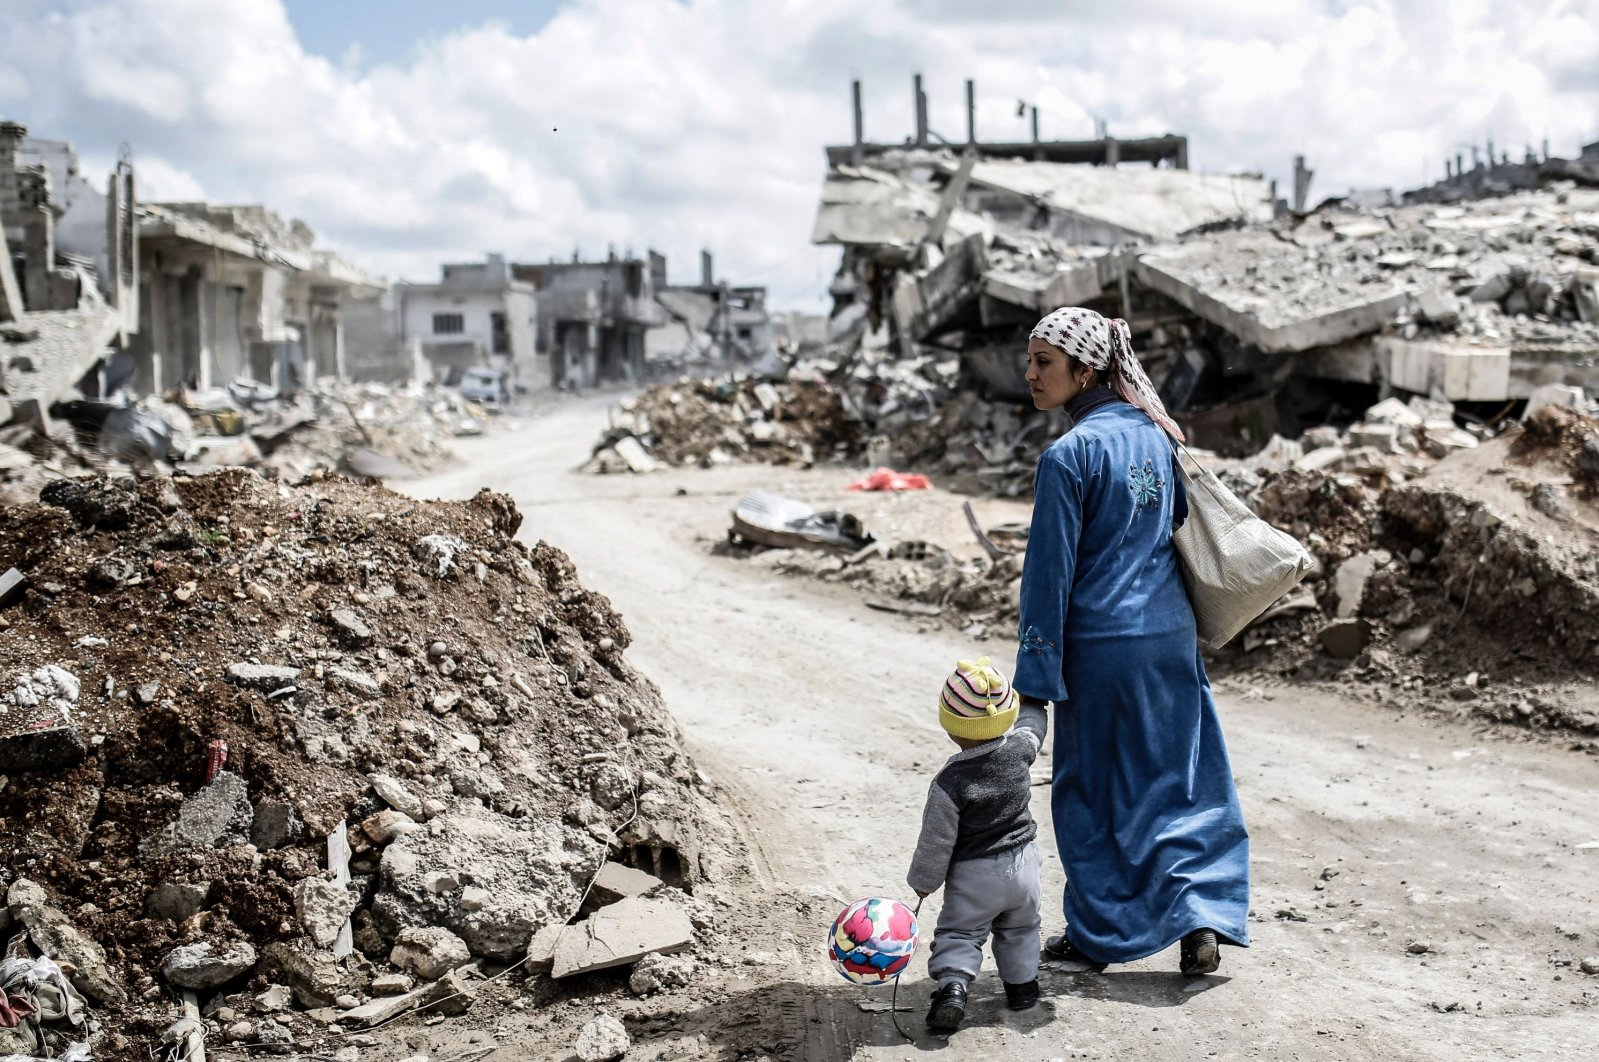 A Kurdish Syrian woman walks with her child past the ruins of the town of Kobane, also known as Ain al-Arab, Syria, March 25, 2015. (Yasin Akgul/AFP Photo)